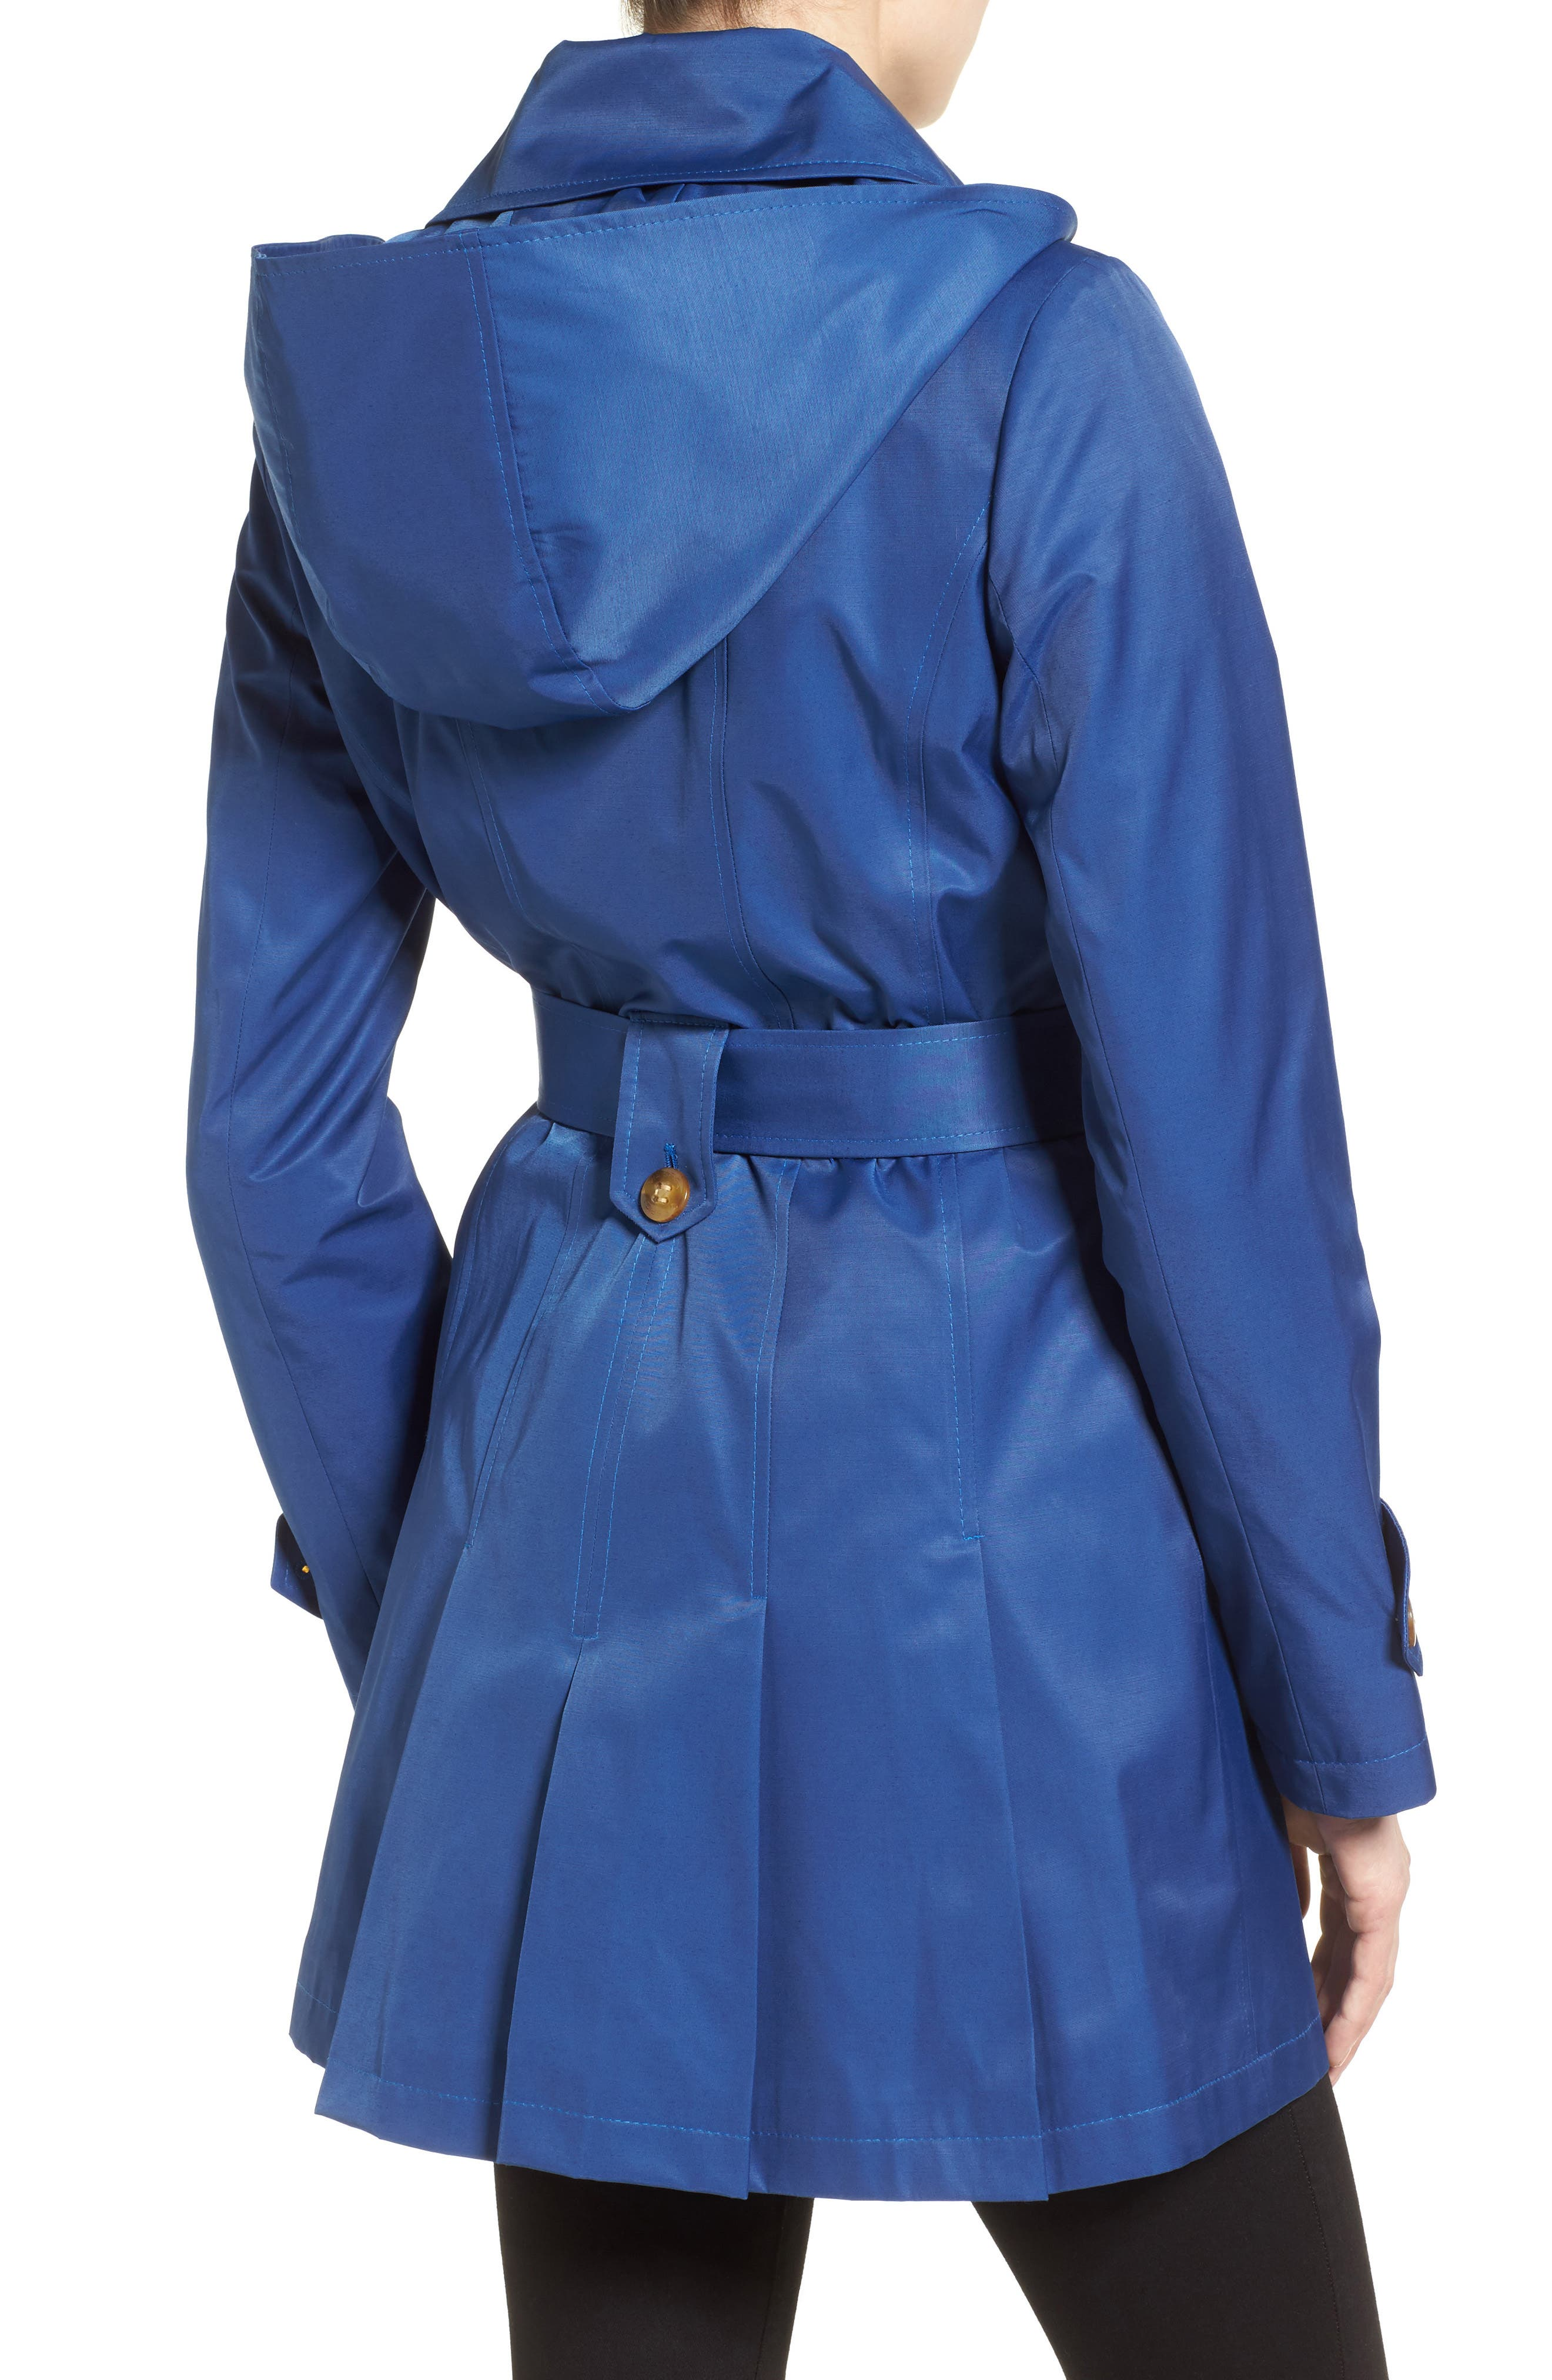 'Scarpa' Hooded Single Breasted Trench Coat,                             Alternate thumbnail 14, color,